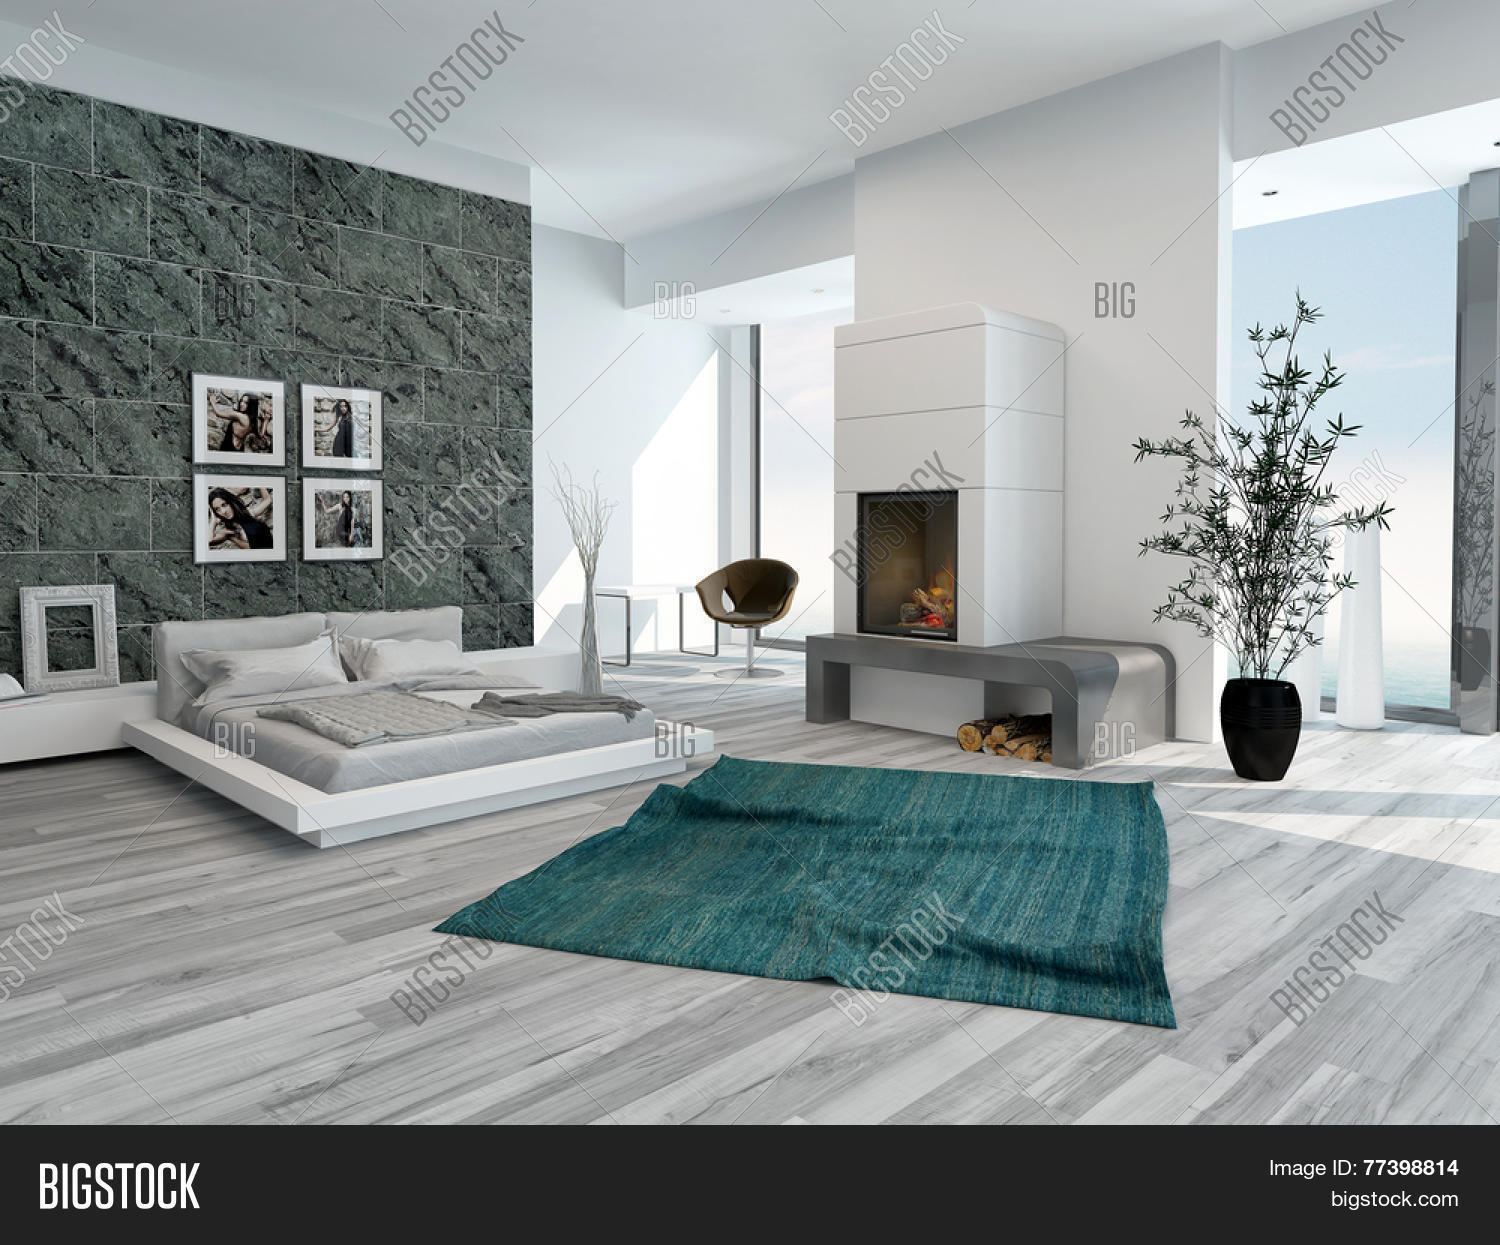 3d rendering of stylish modern bedroom interior with a